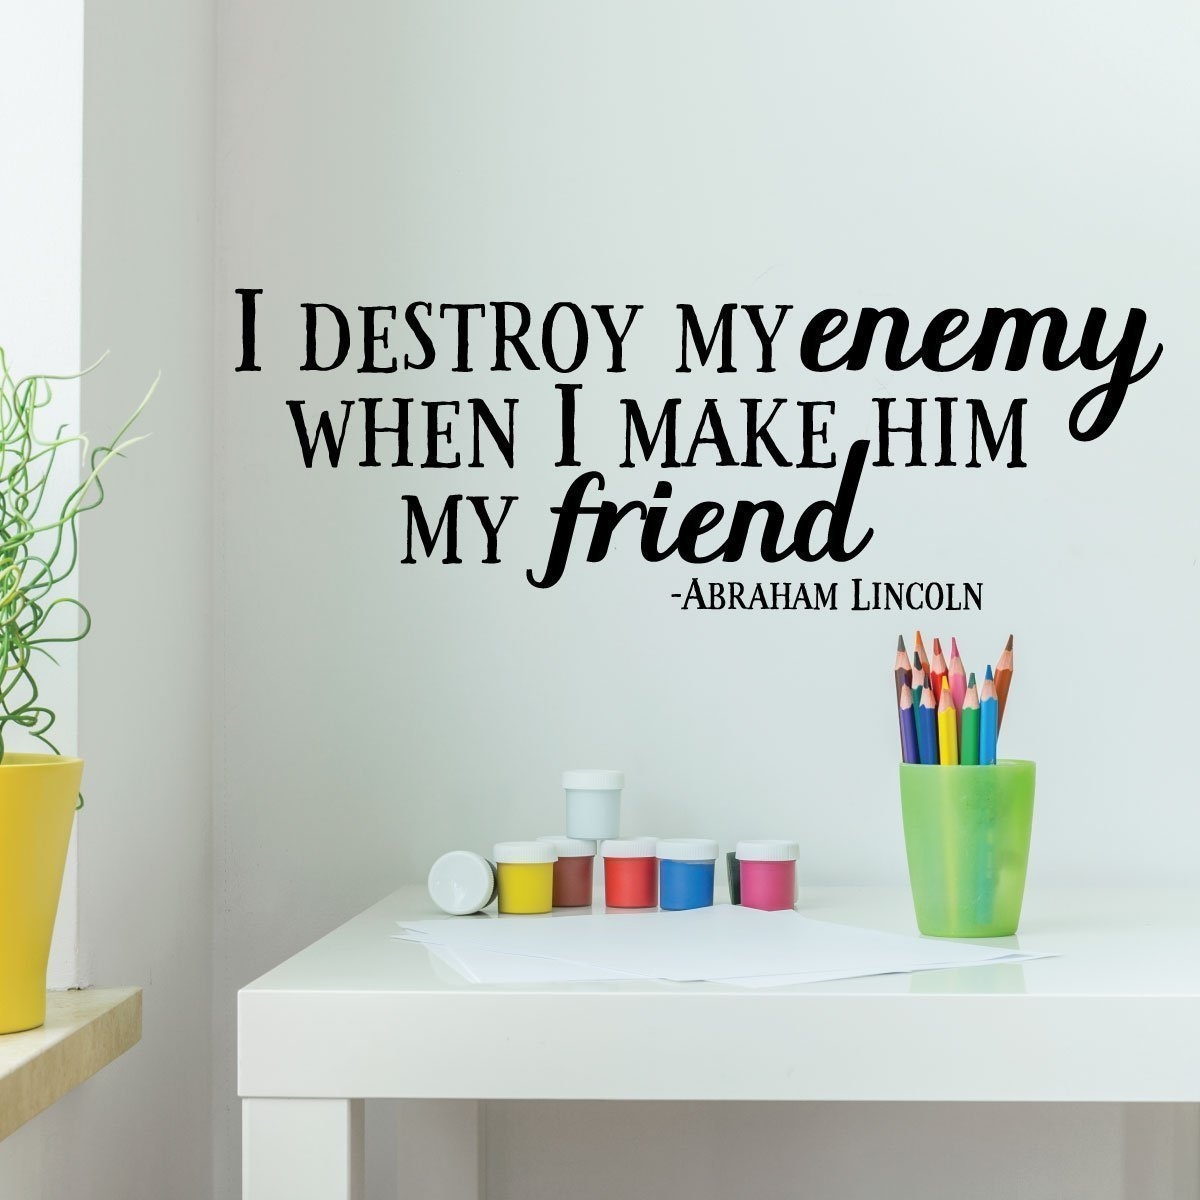 Friendship Quotes Wall Decor Abraham Lincoln I Destroy My Enemy Vinyl Decal Sign Decoration Motivational Patriotic For Schools